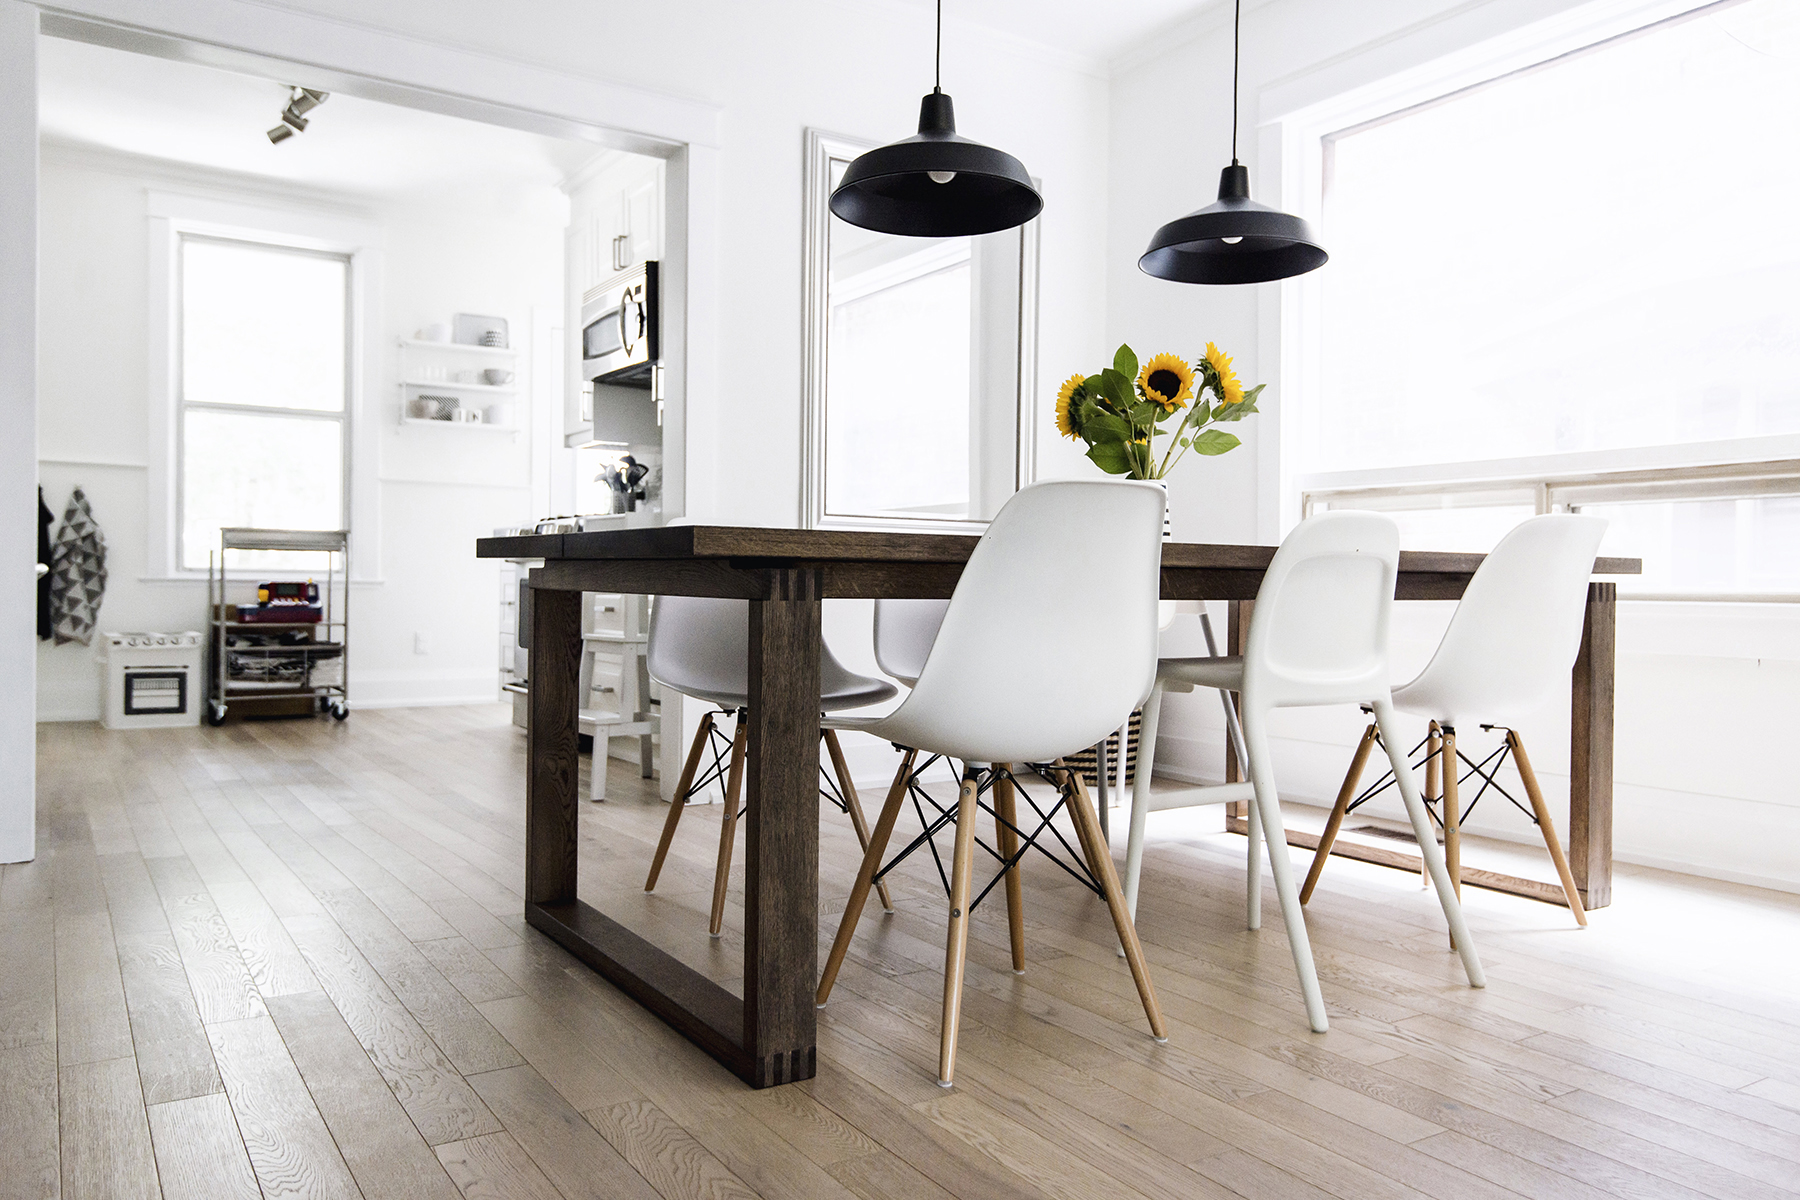 Scandinavian dining room with light wood floors and white walls - Top 10 tips for adding Scandinavian style to your home | Happy Grey Lucky